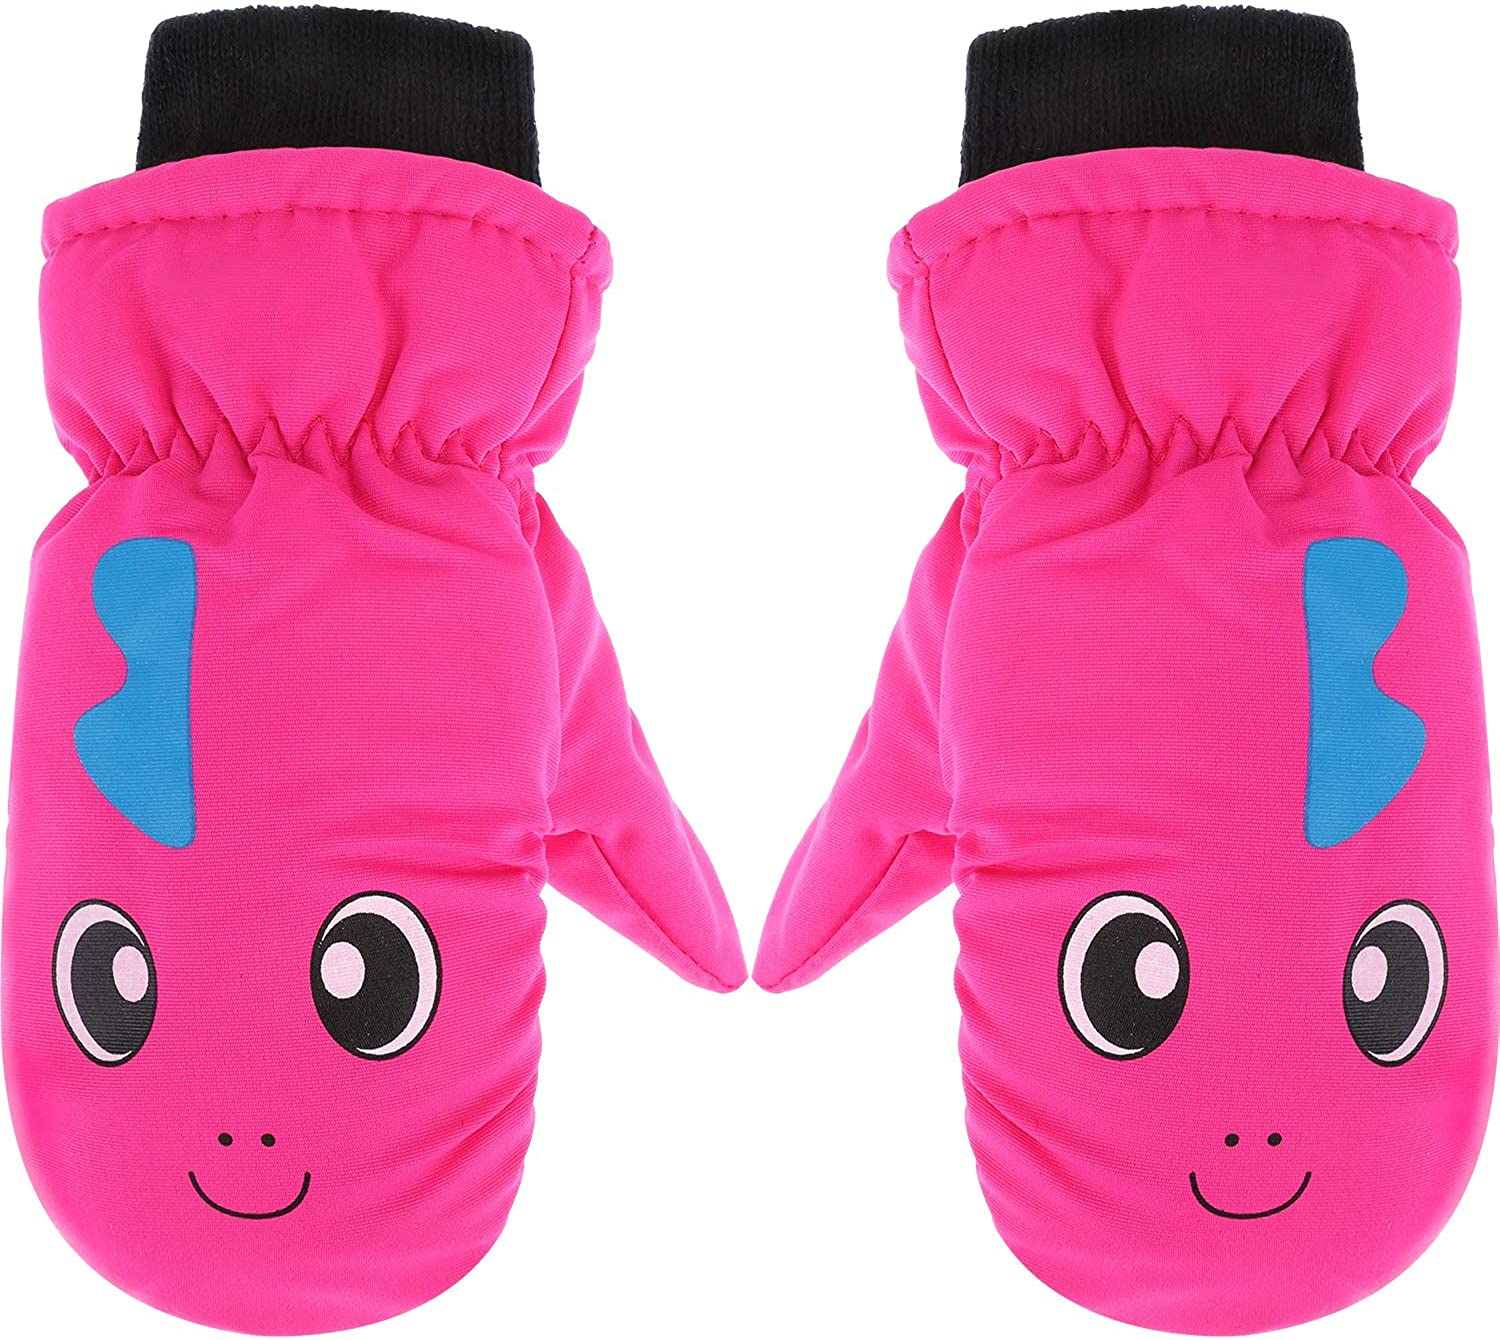 Snow Mittens Winter Ski Mittens Waterproof Warm Cotton-lined Gloves for Kids: Clothing, Shoes & Jewelry